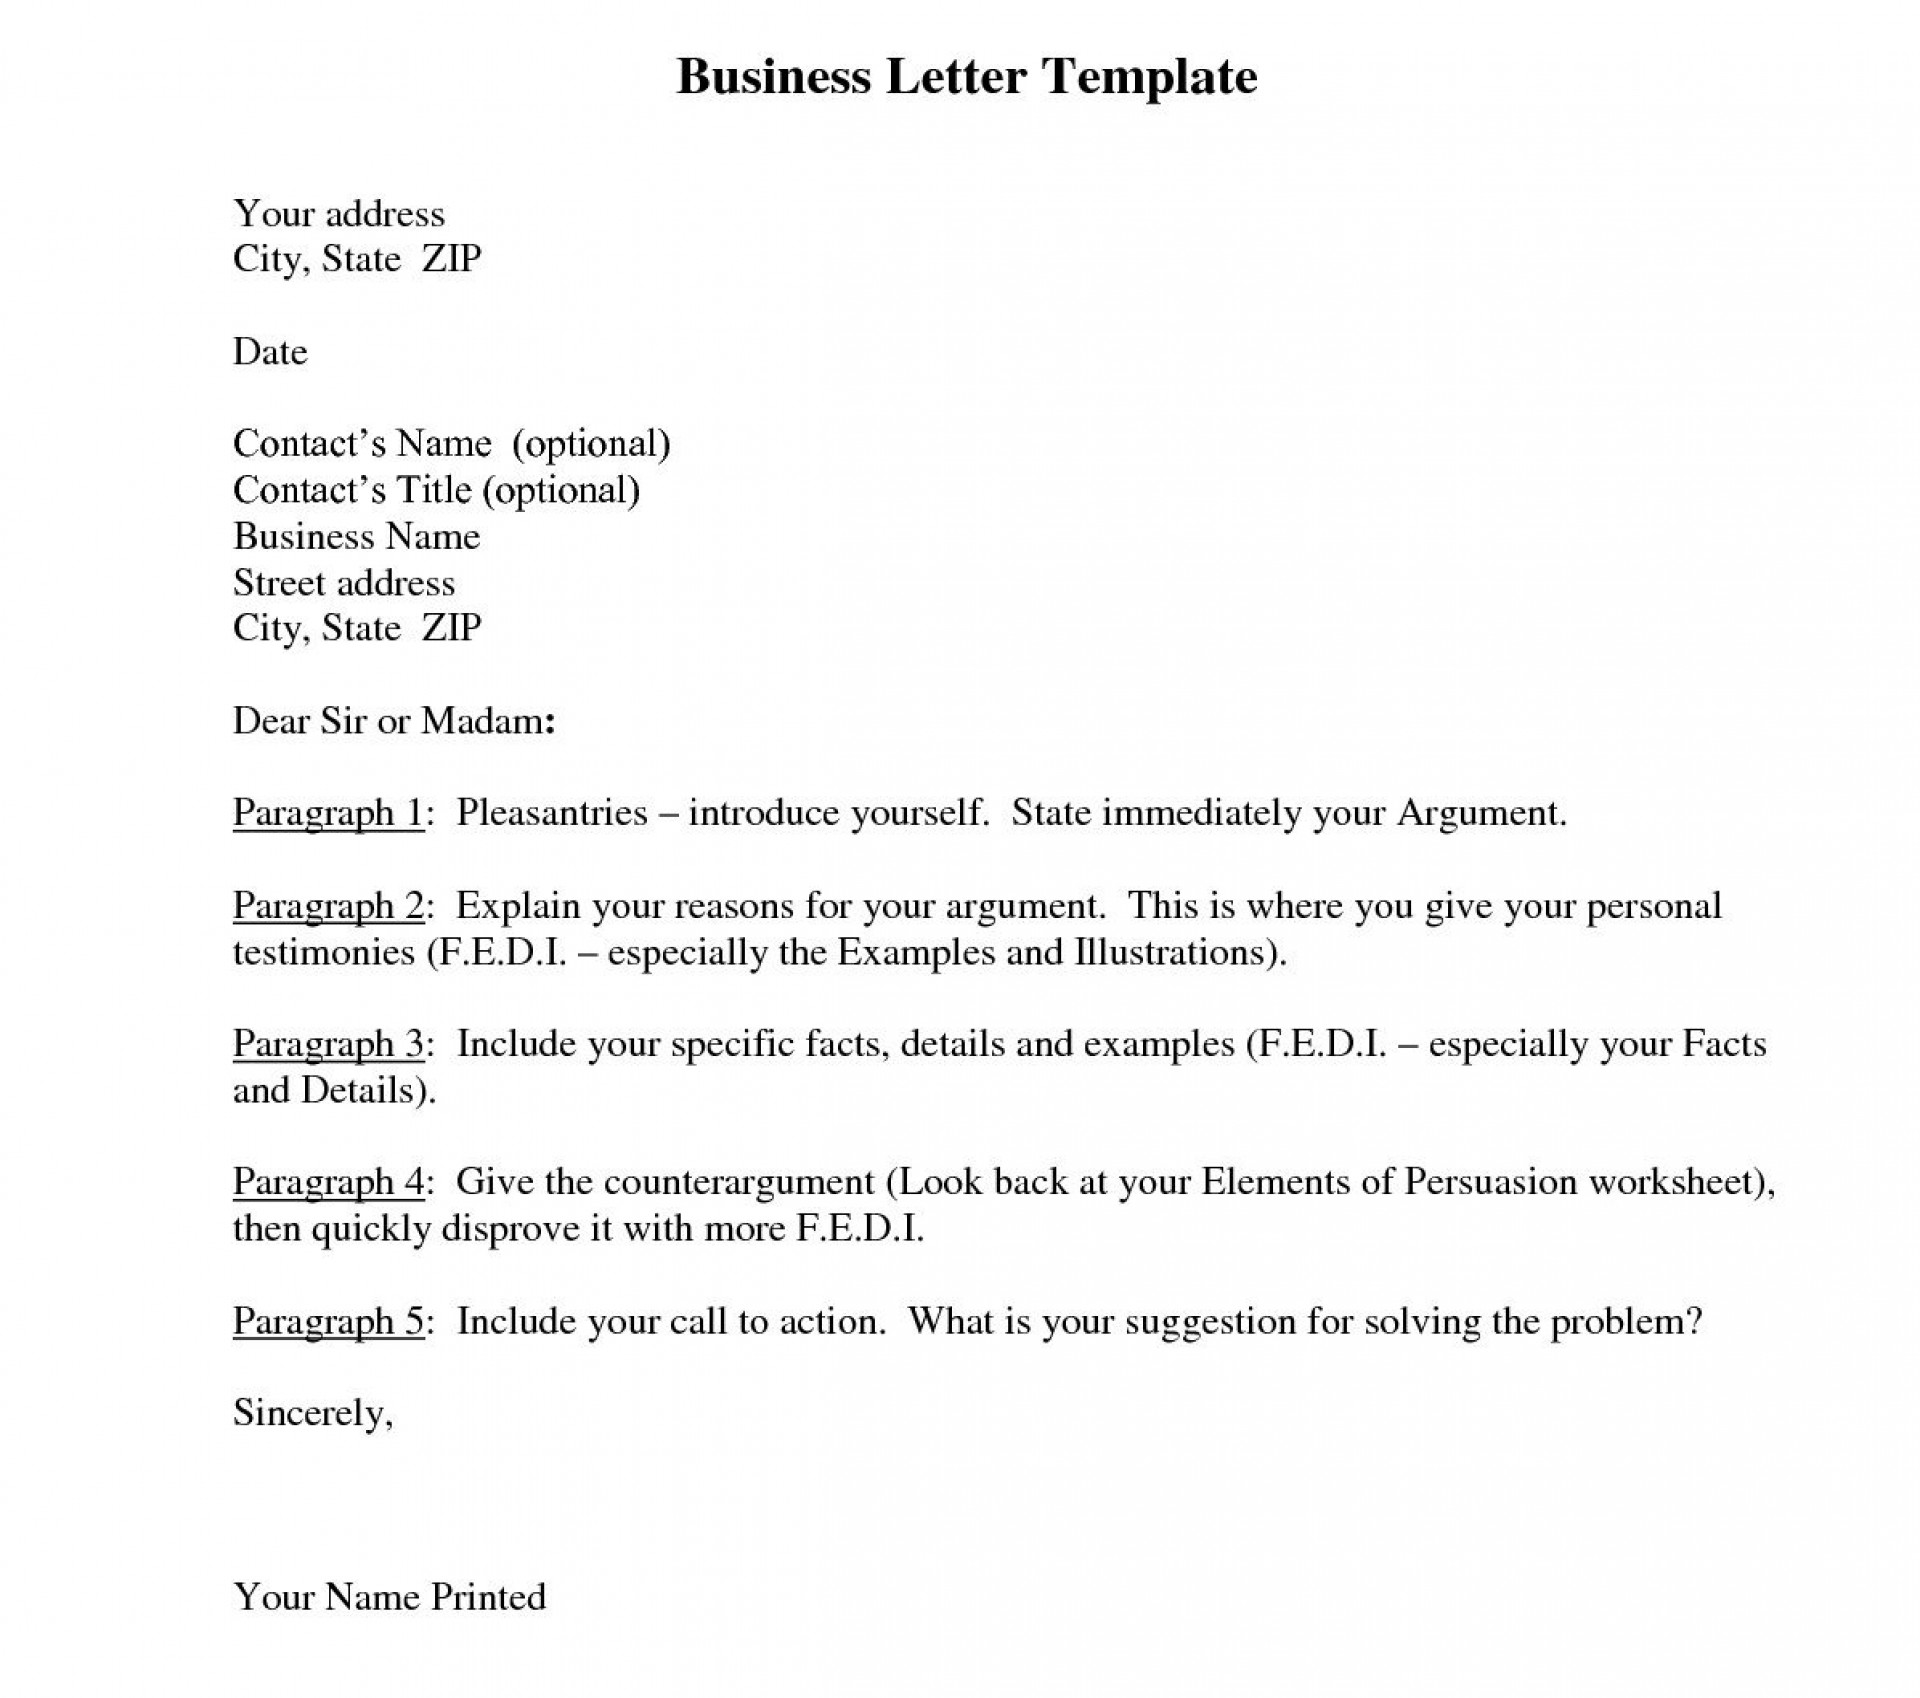 006 Beautiful Busines Letter Template Word High Def  Cover Free1920